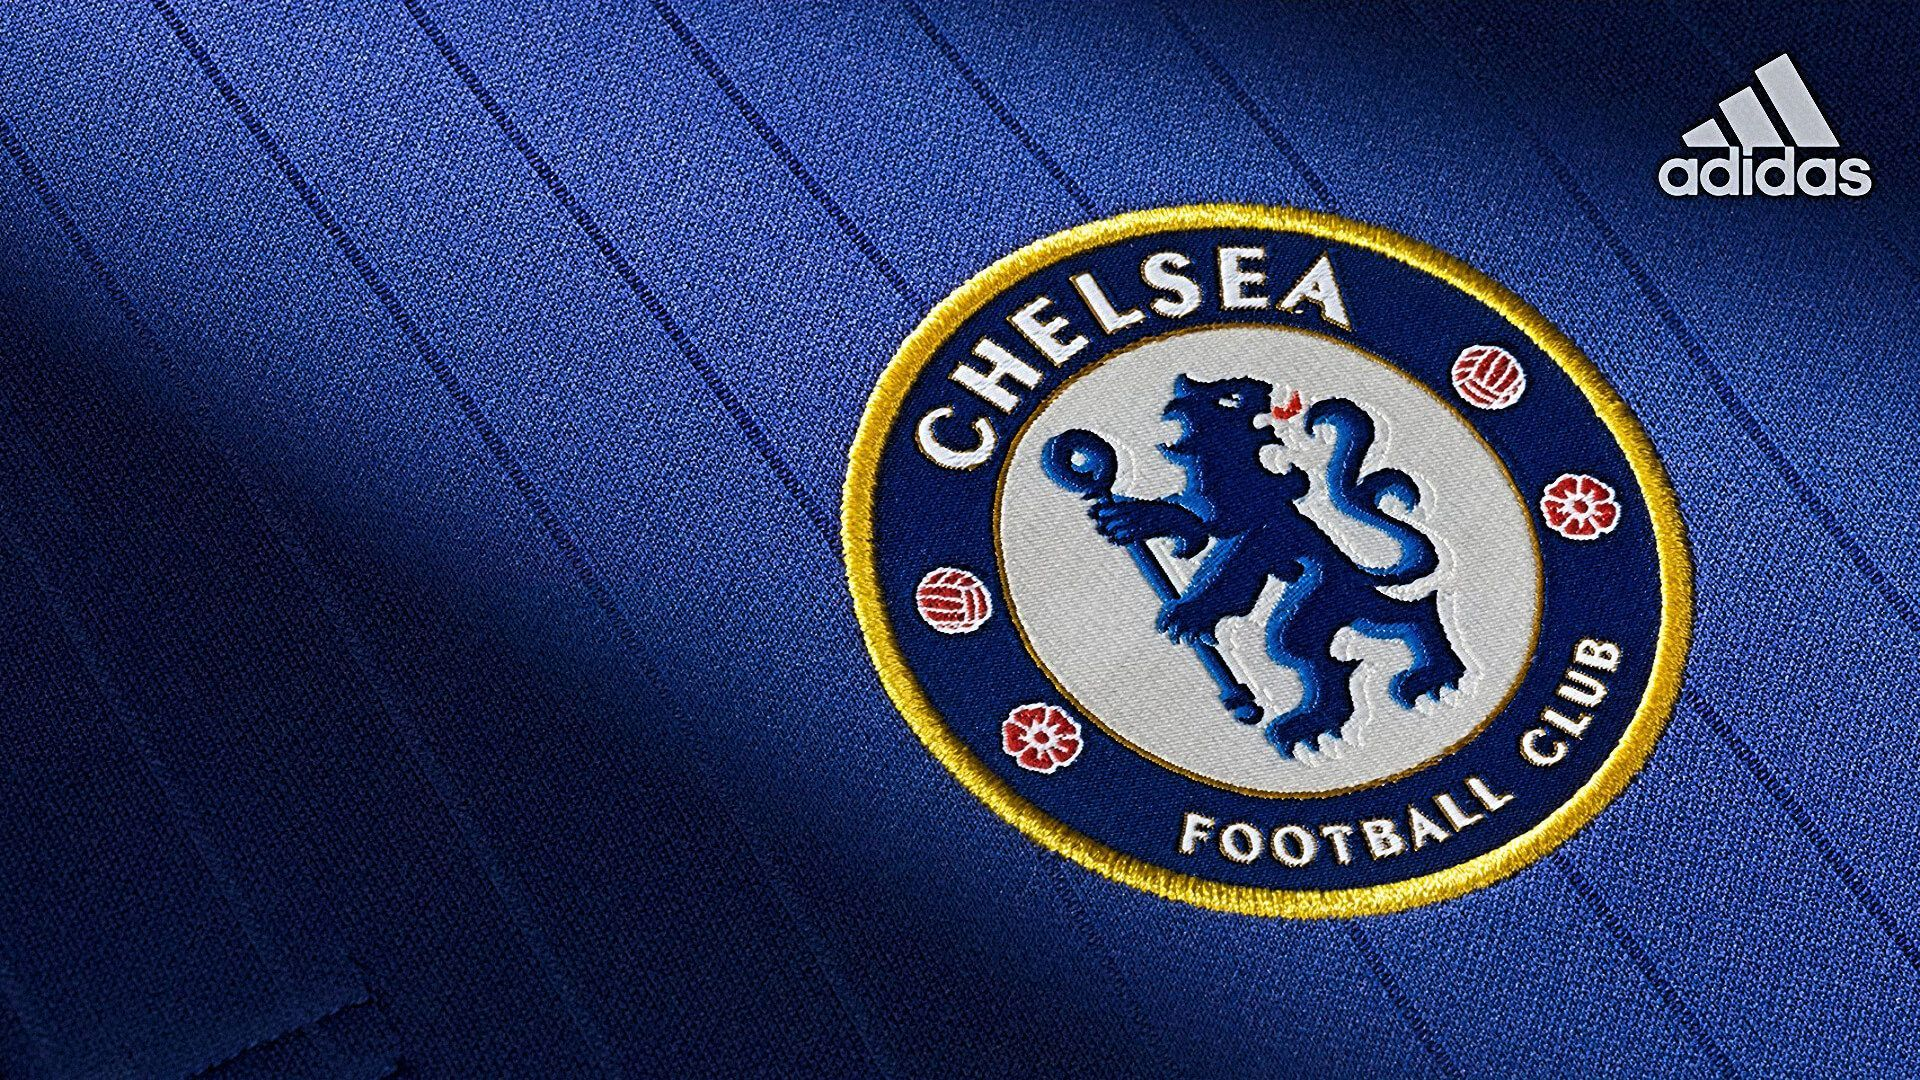 50 Chelsea FC Logo Wallpapers   Download at WallpaperBro 1920x1080